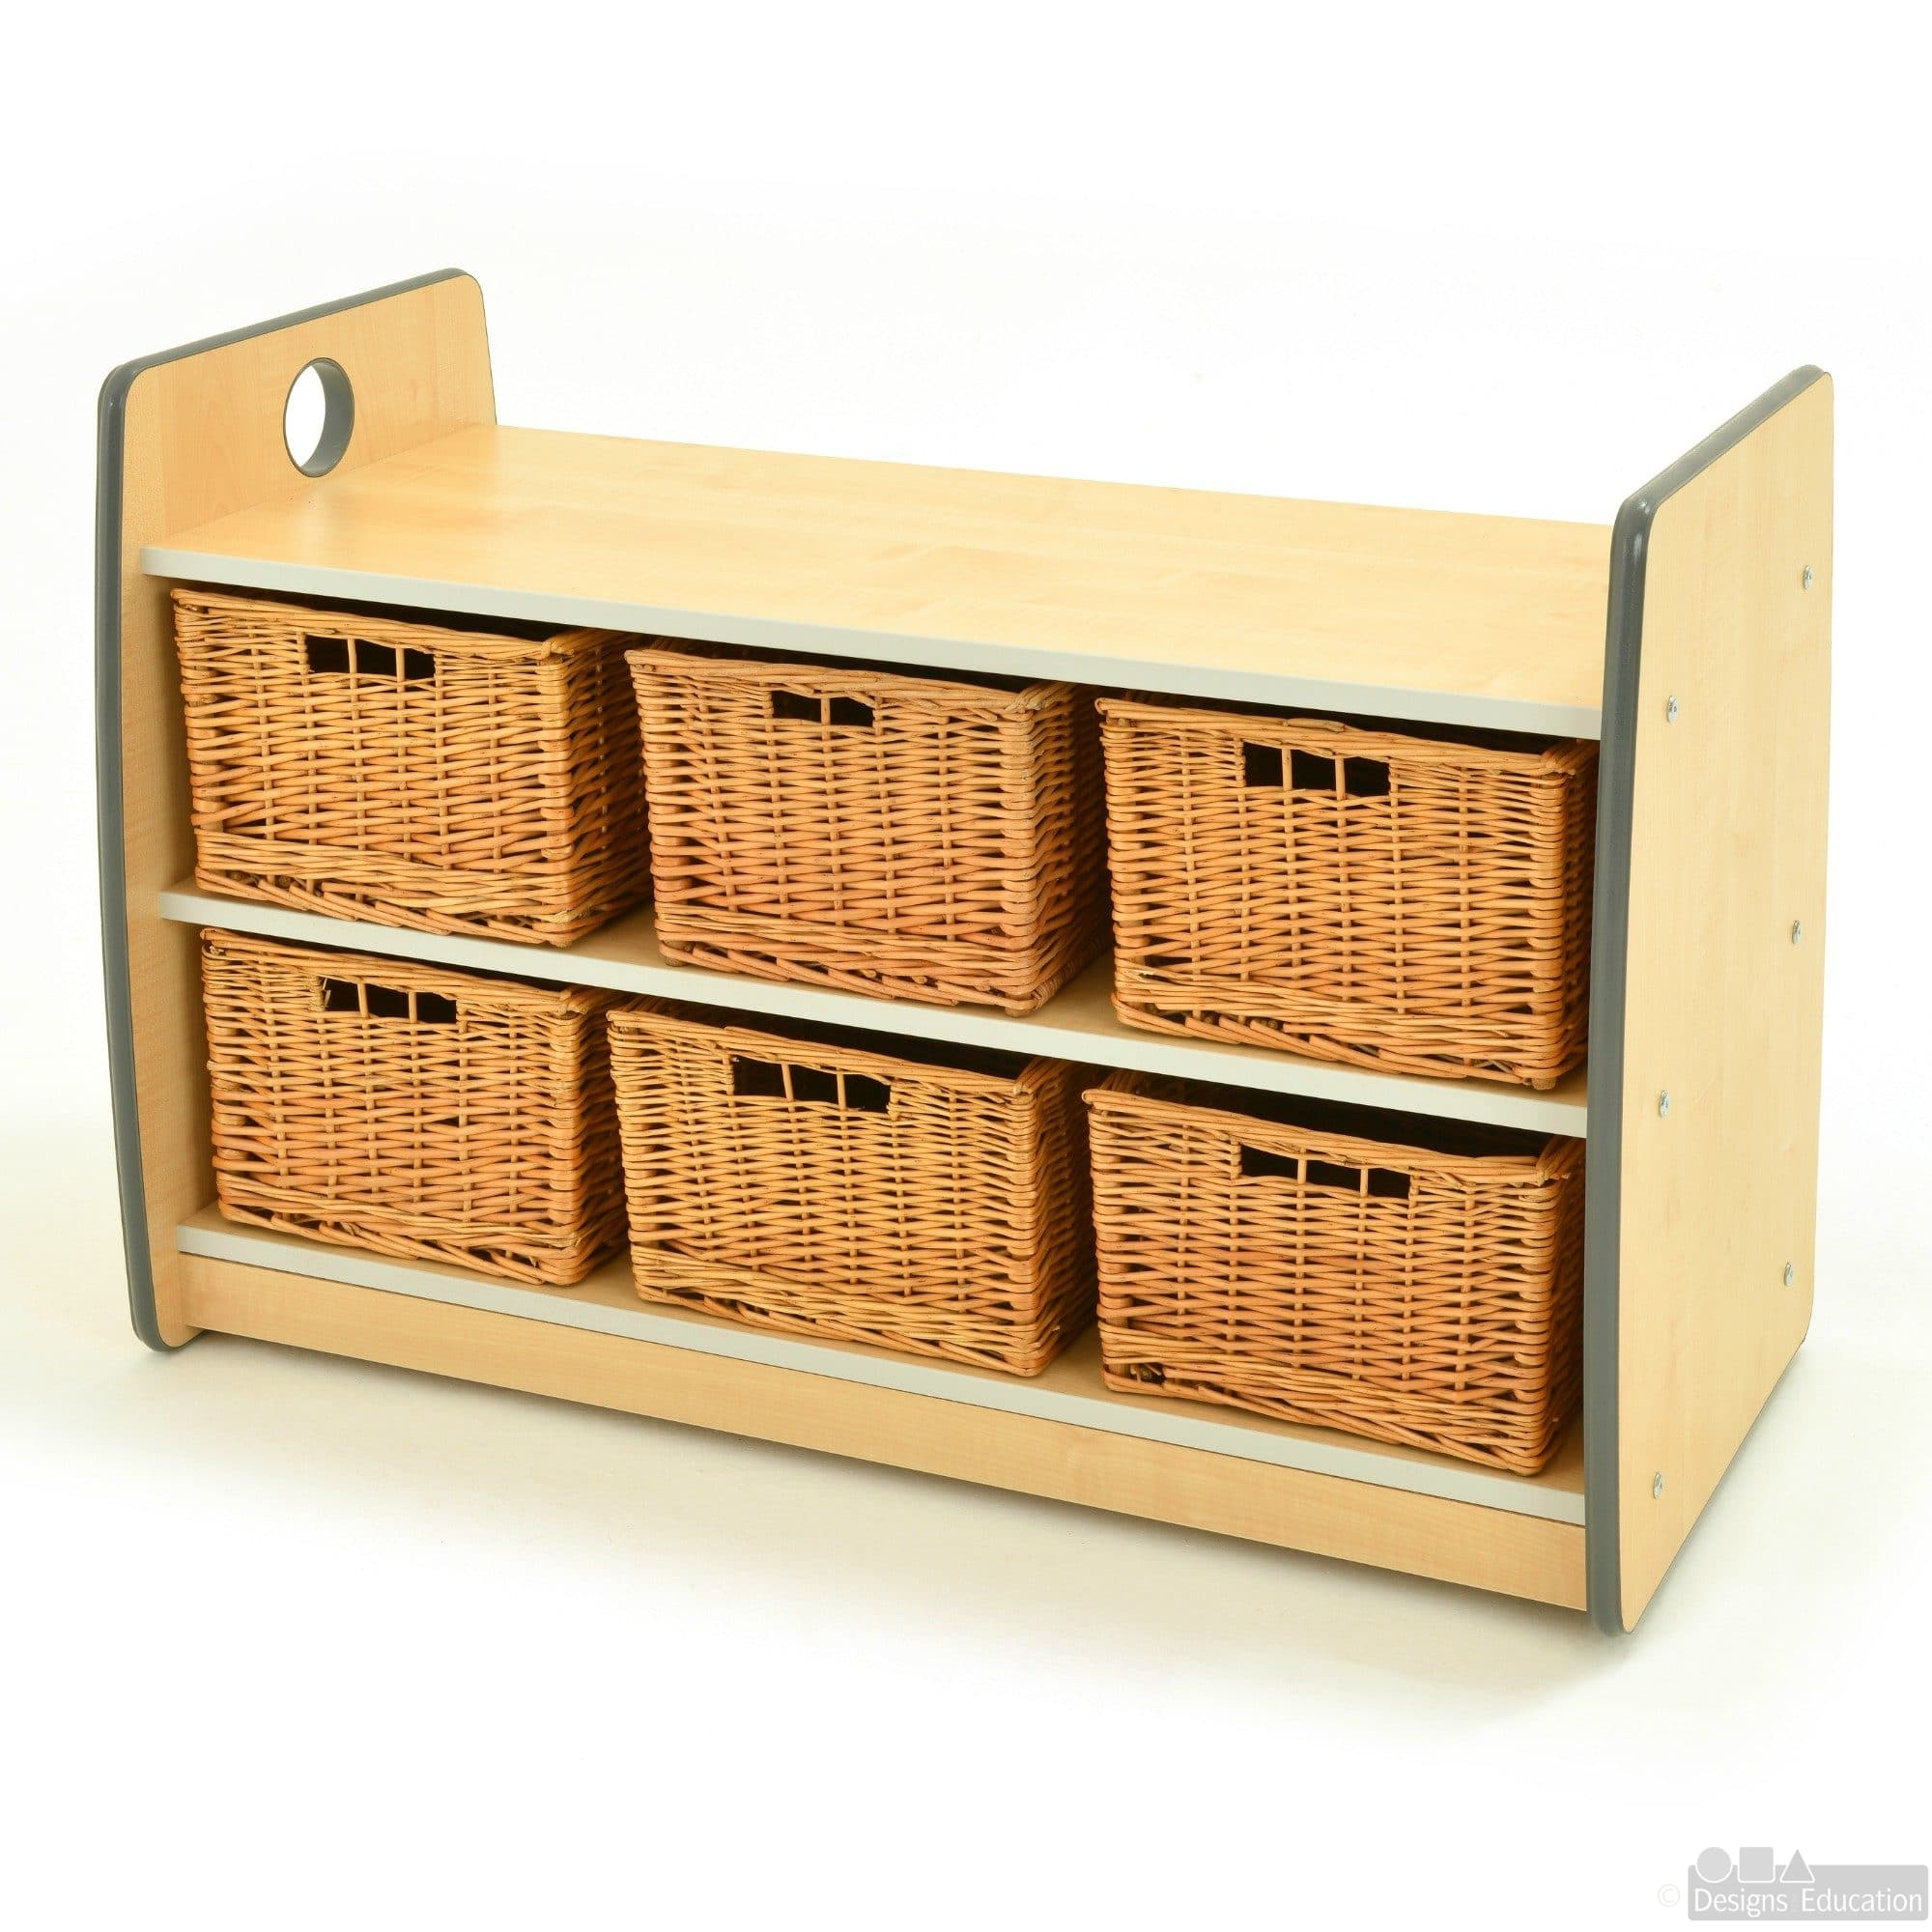 Storage Express Home: Express Size 2 Shelving Unit 6 Baskets